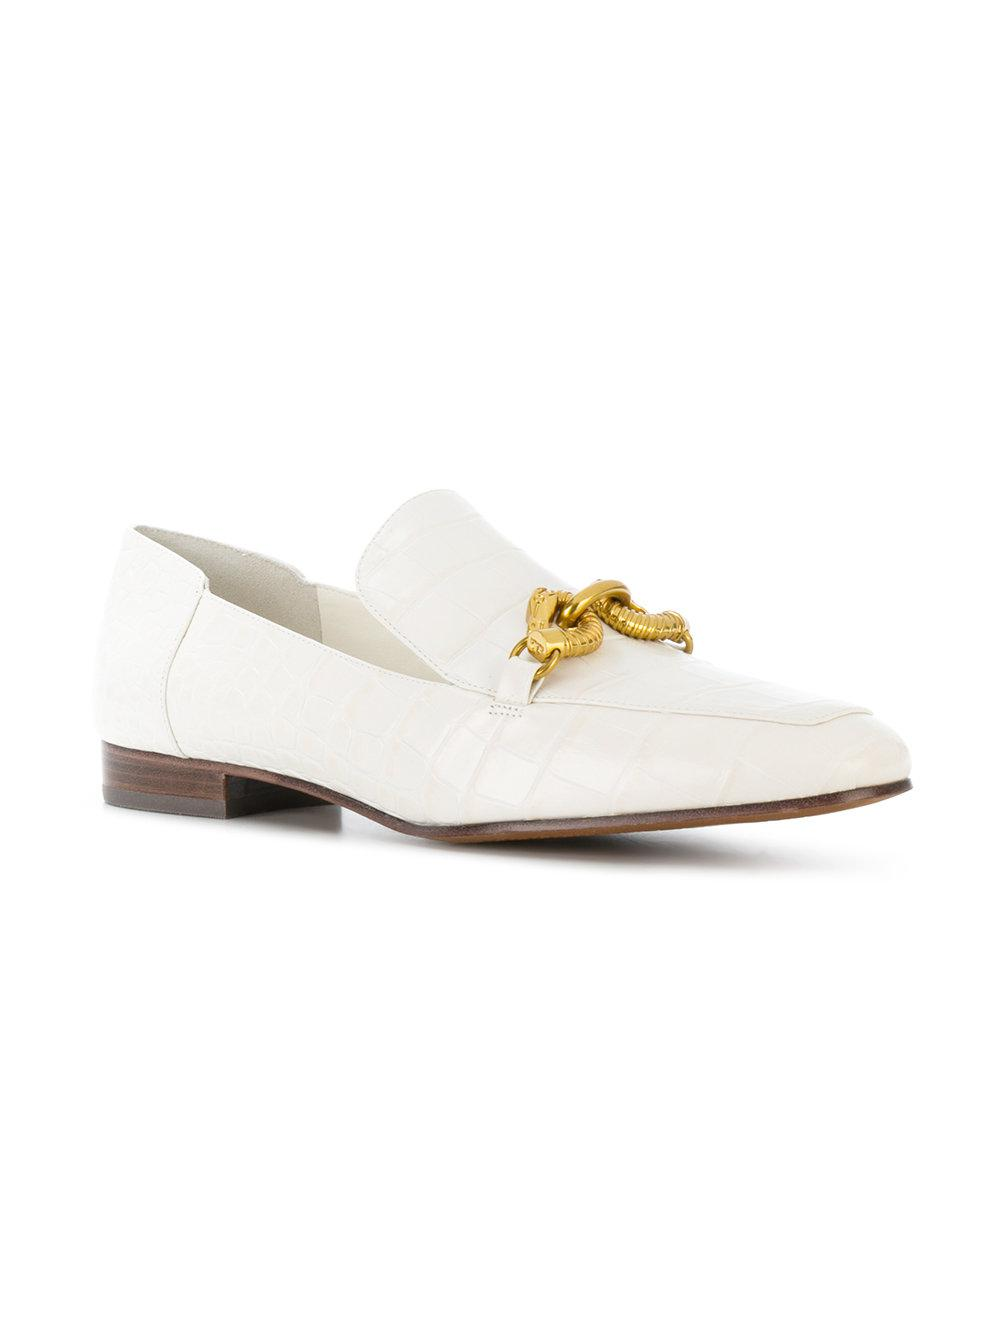 d155c29c119 Lyst - Tory Burch Jessa Horse-hardware Loafers in White